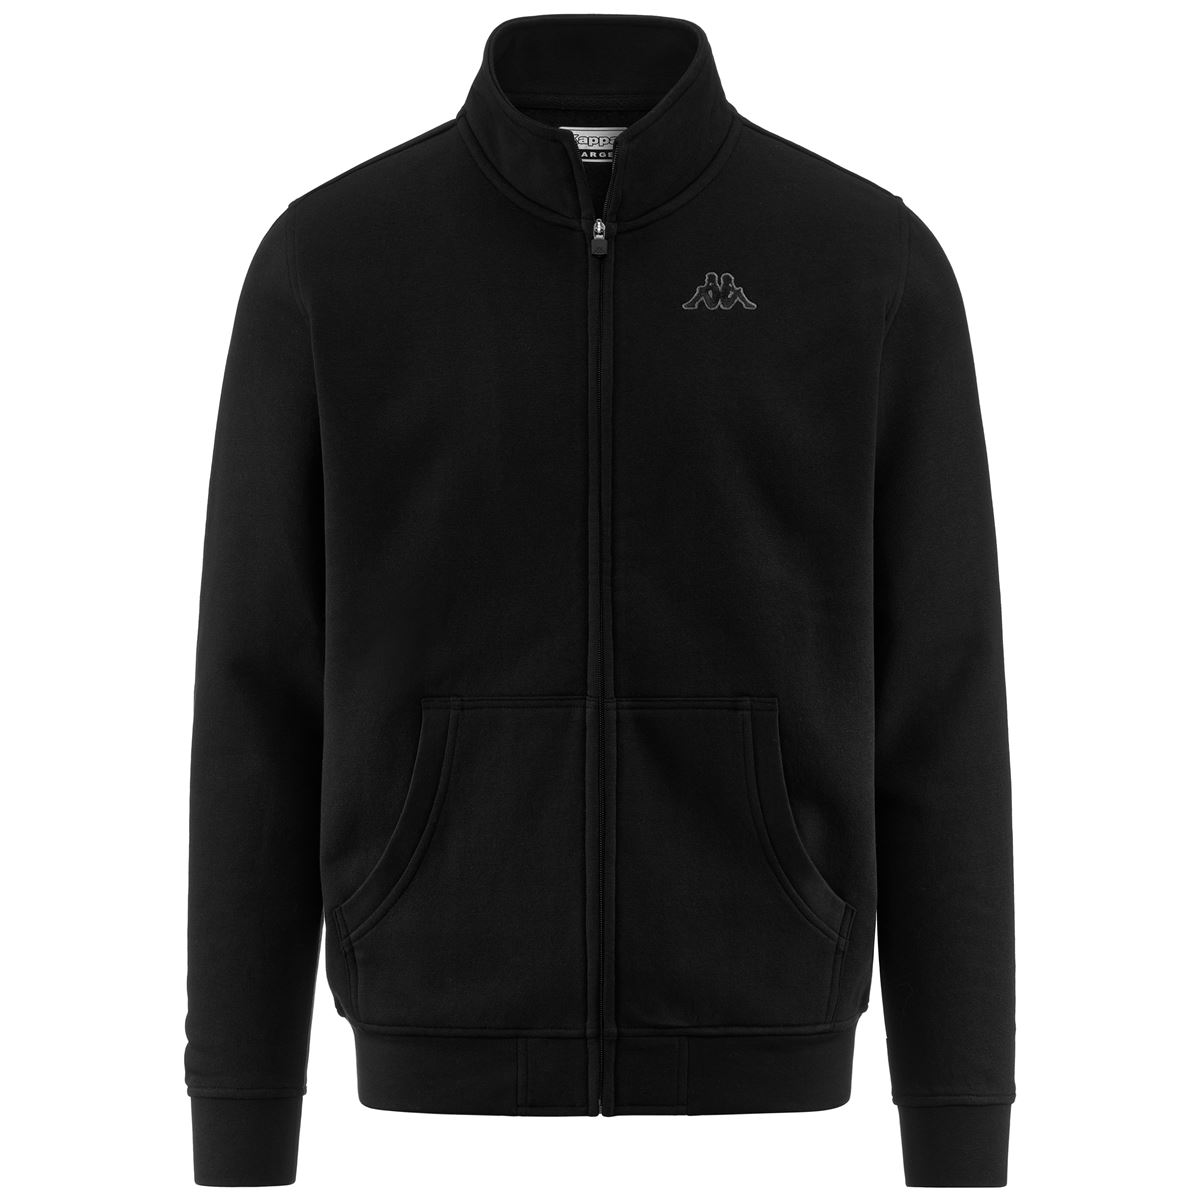 Kappa Fleece Sweater Man LOGO ZENTIL Training Jacket